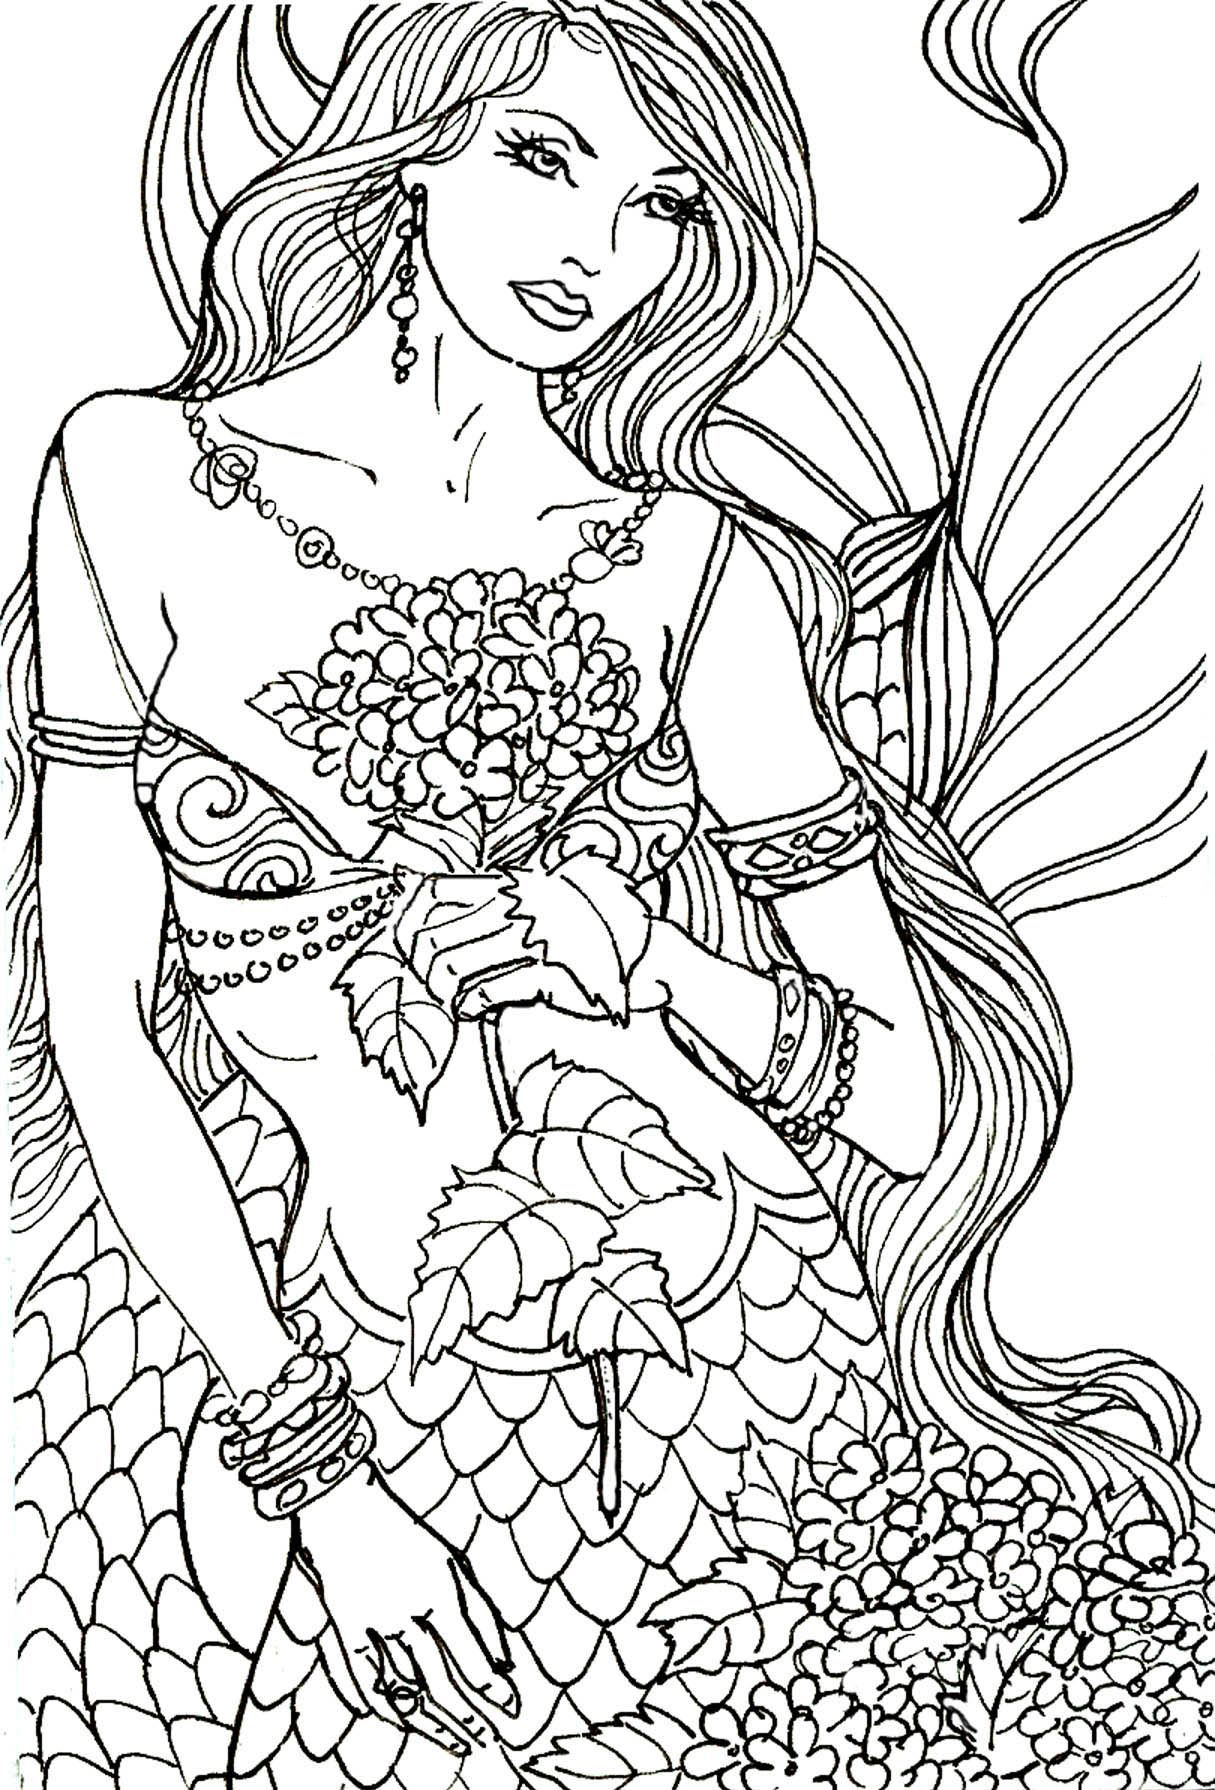 It's just an image of Free Printable Mermaid Coloring Pages for Adults throughout little mermaid